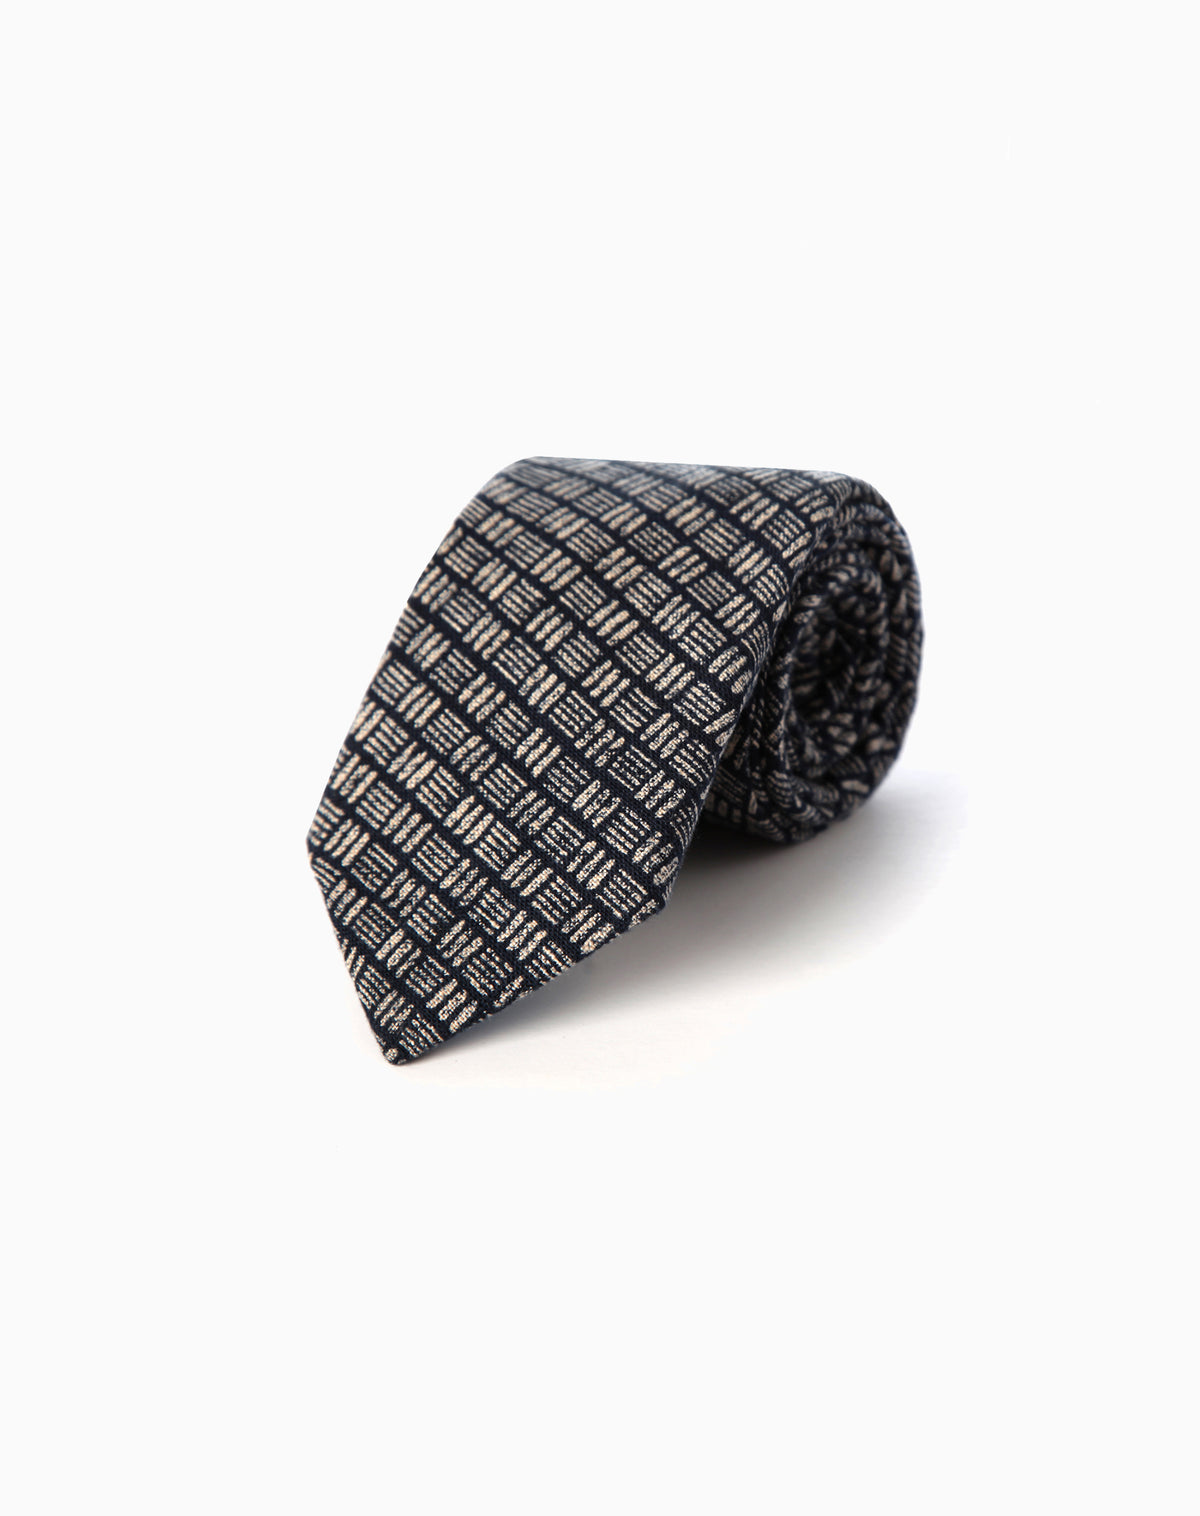 Tie in Crosshatch